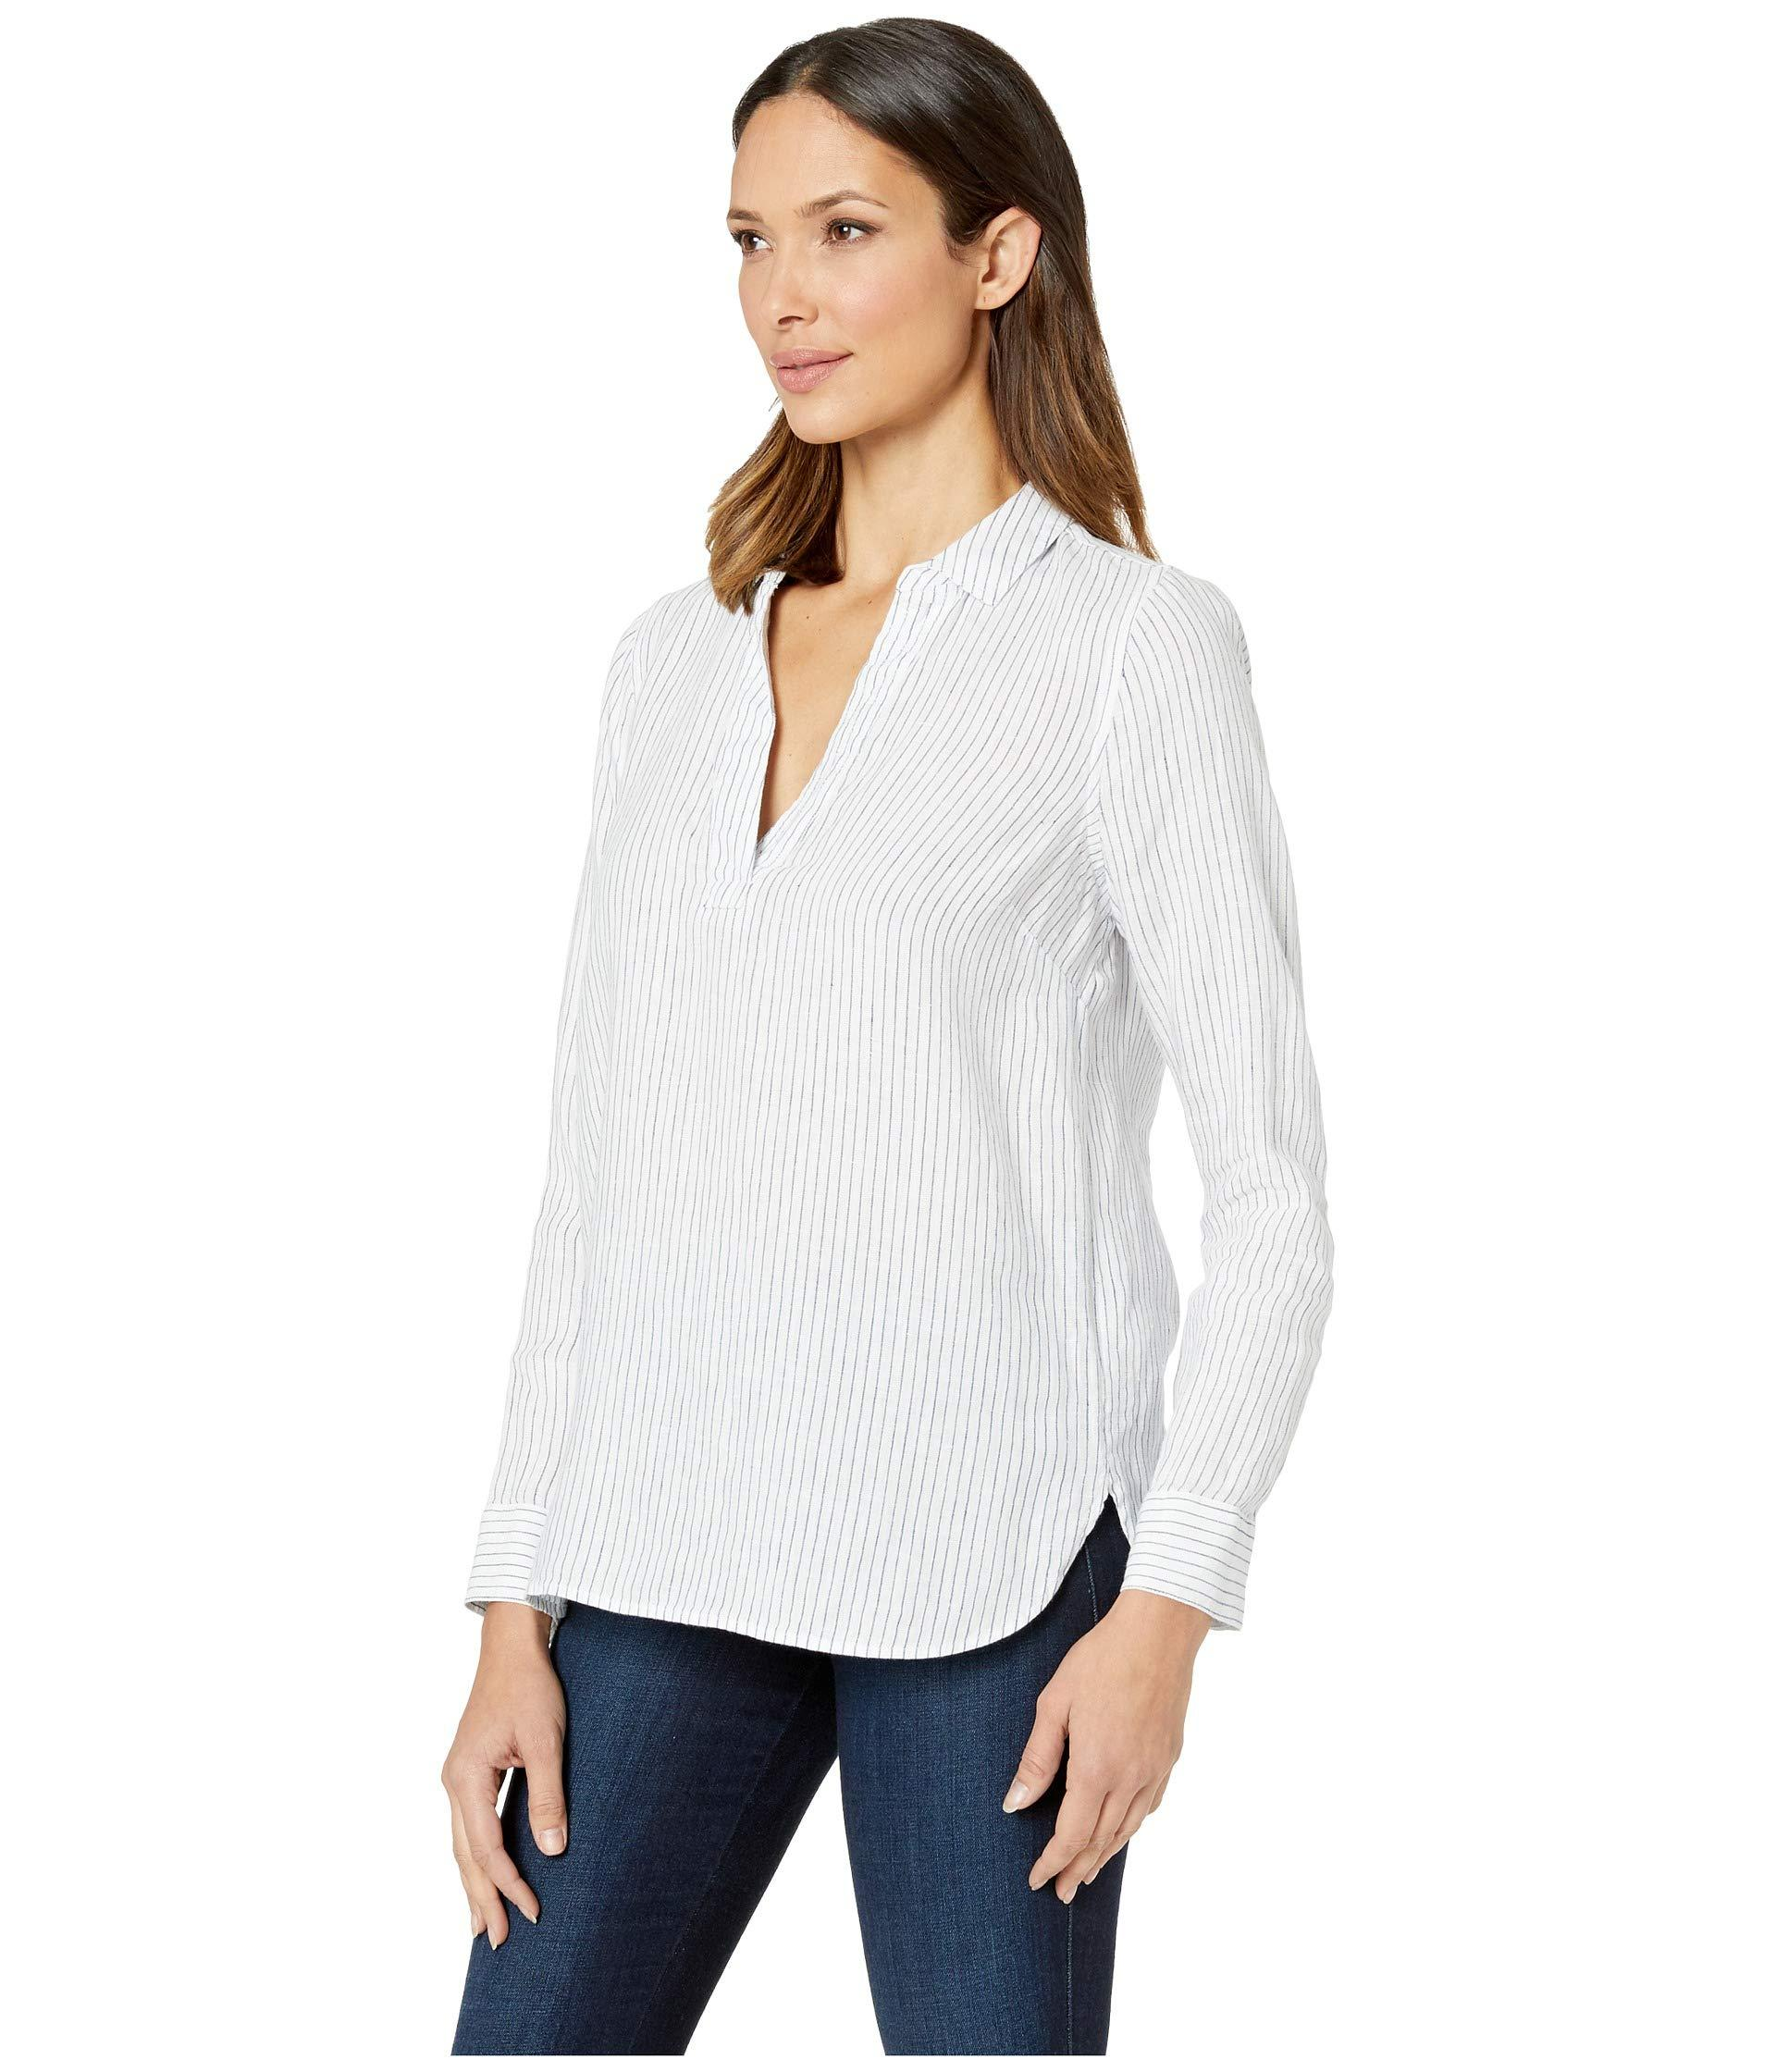 f201c7cad77fa Lyst - NYDJ Linen Popover Tunic (peacoat) Women s Clothing in White